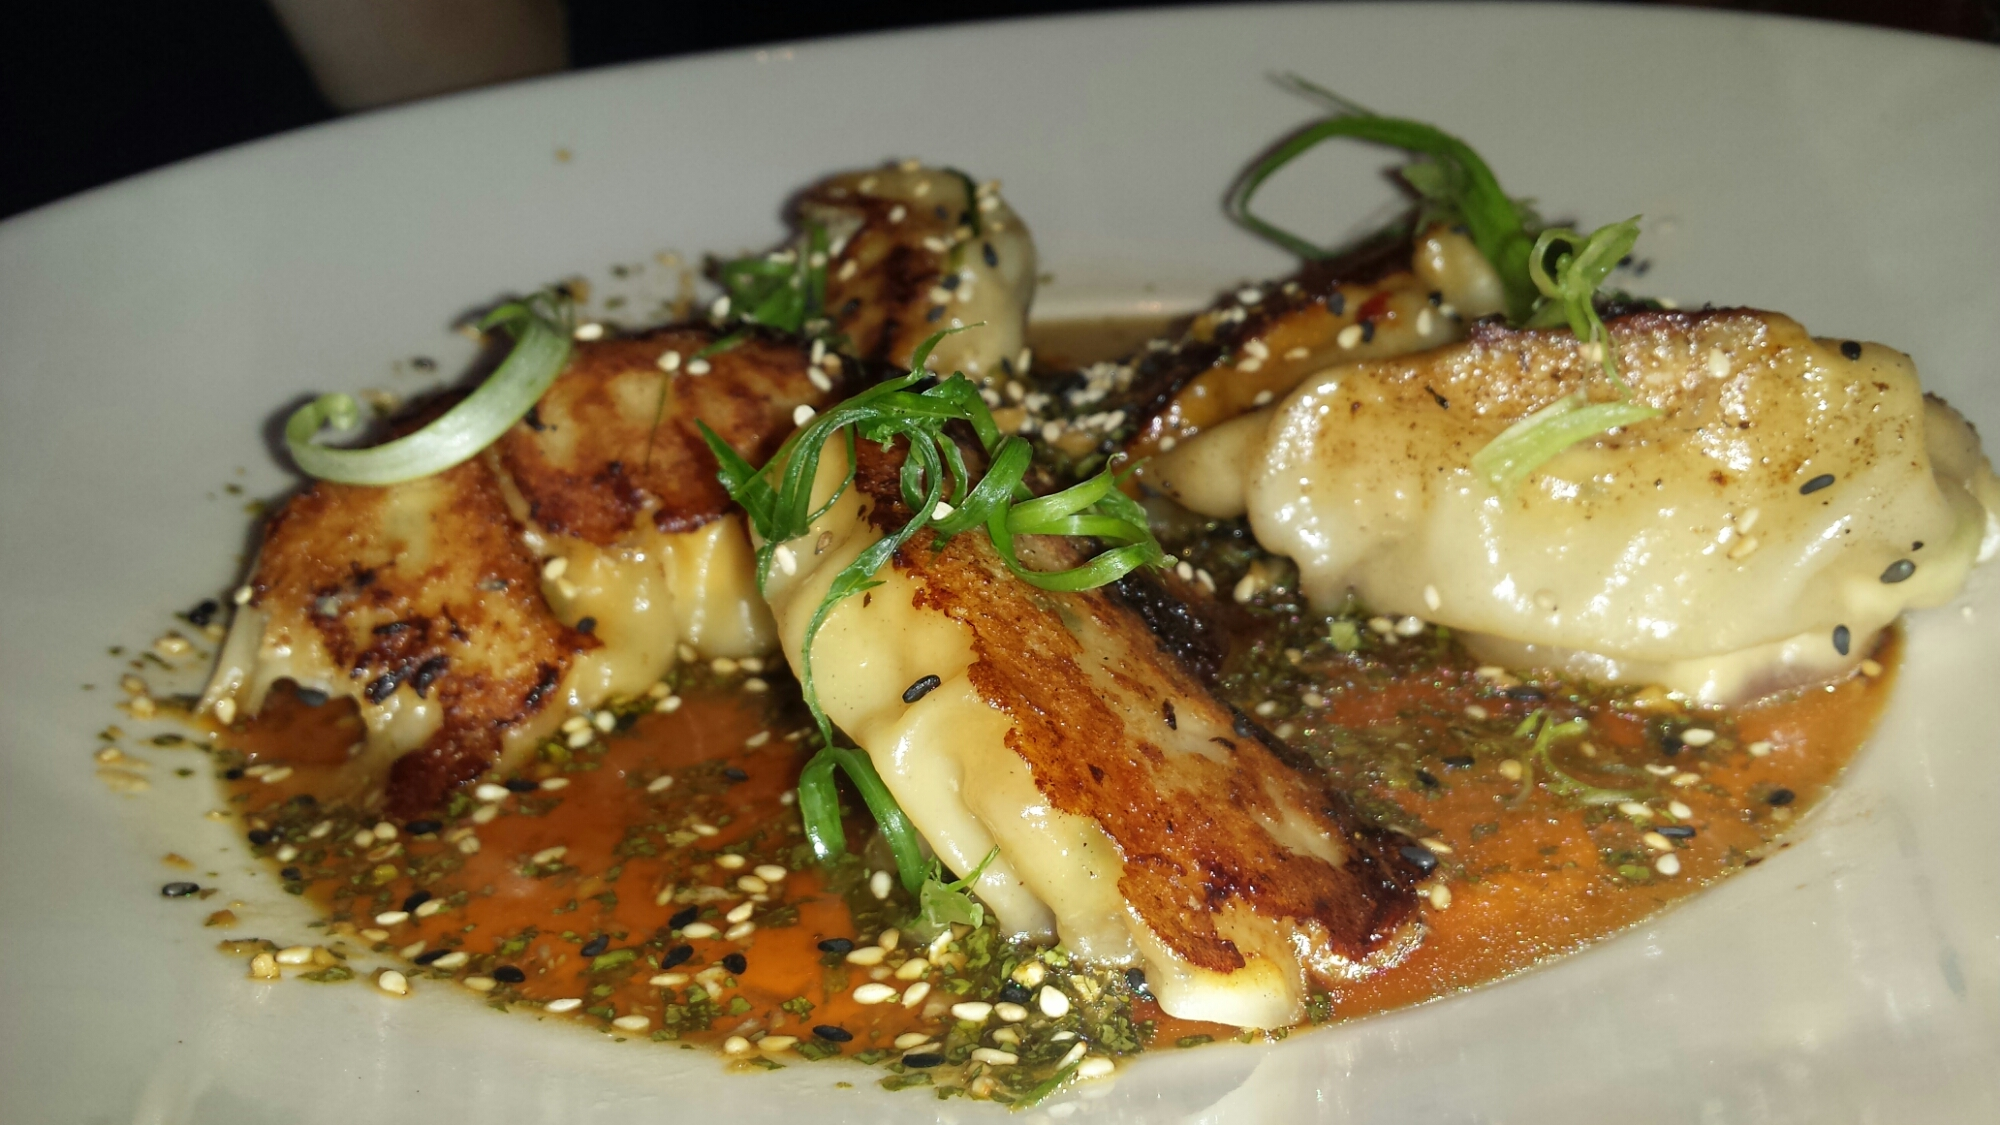 Chicken Pot Stickers - Oriental Dumplings Pan-Fried in the Classic Tradition. Served with our Soy-Ginger Sesame Sauce